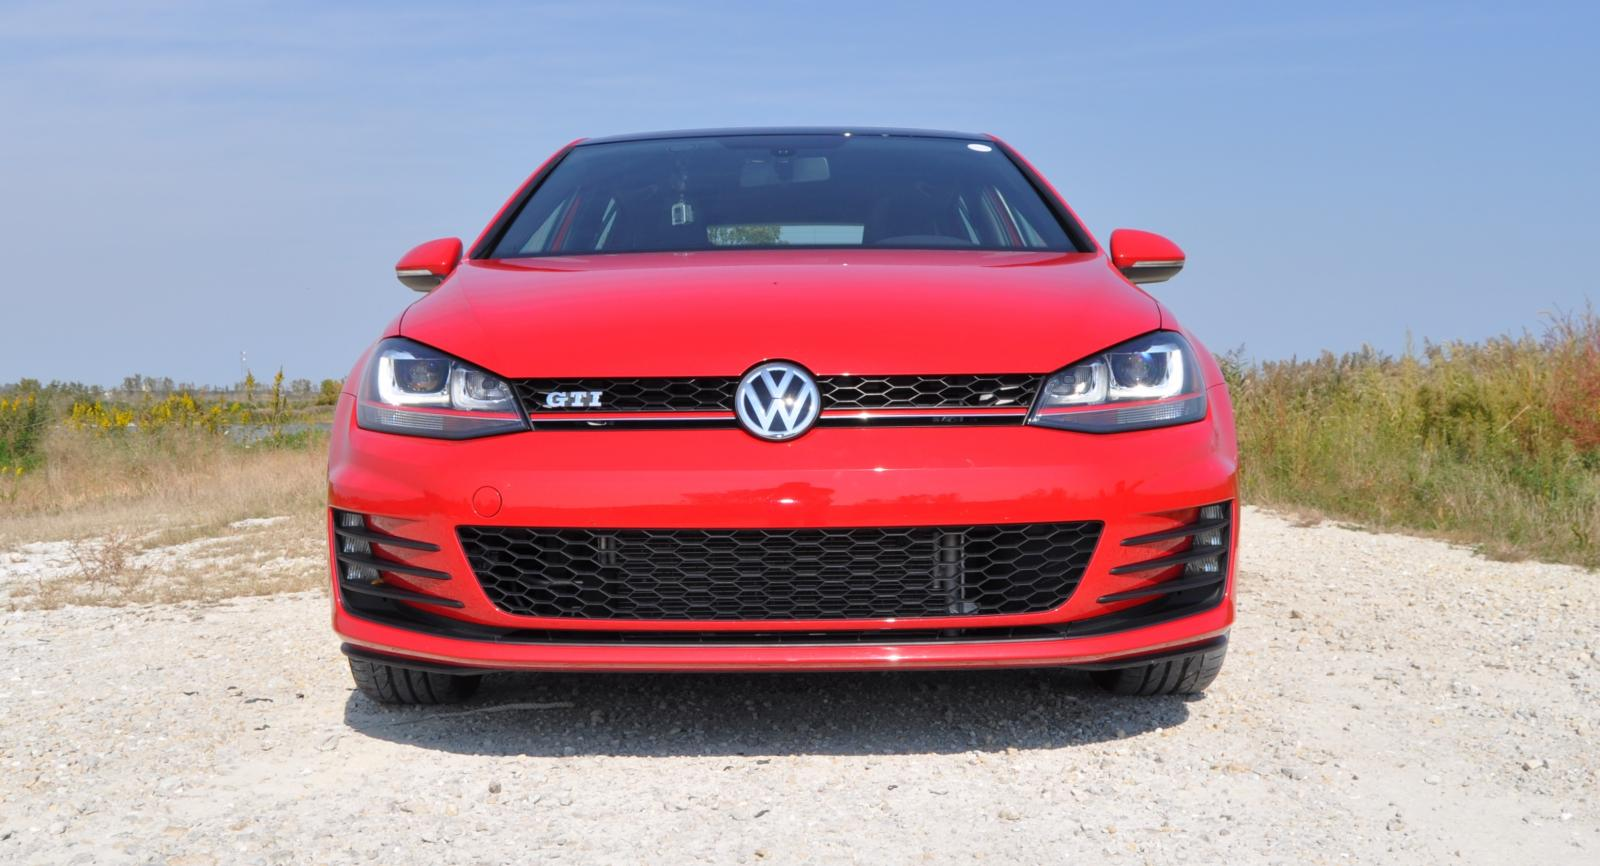 2016 vw golf gti autobahn performance pack road test review by ben lewis. Black Bedroom Furniture Sets. Home Design Ideas